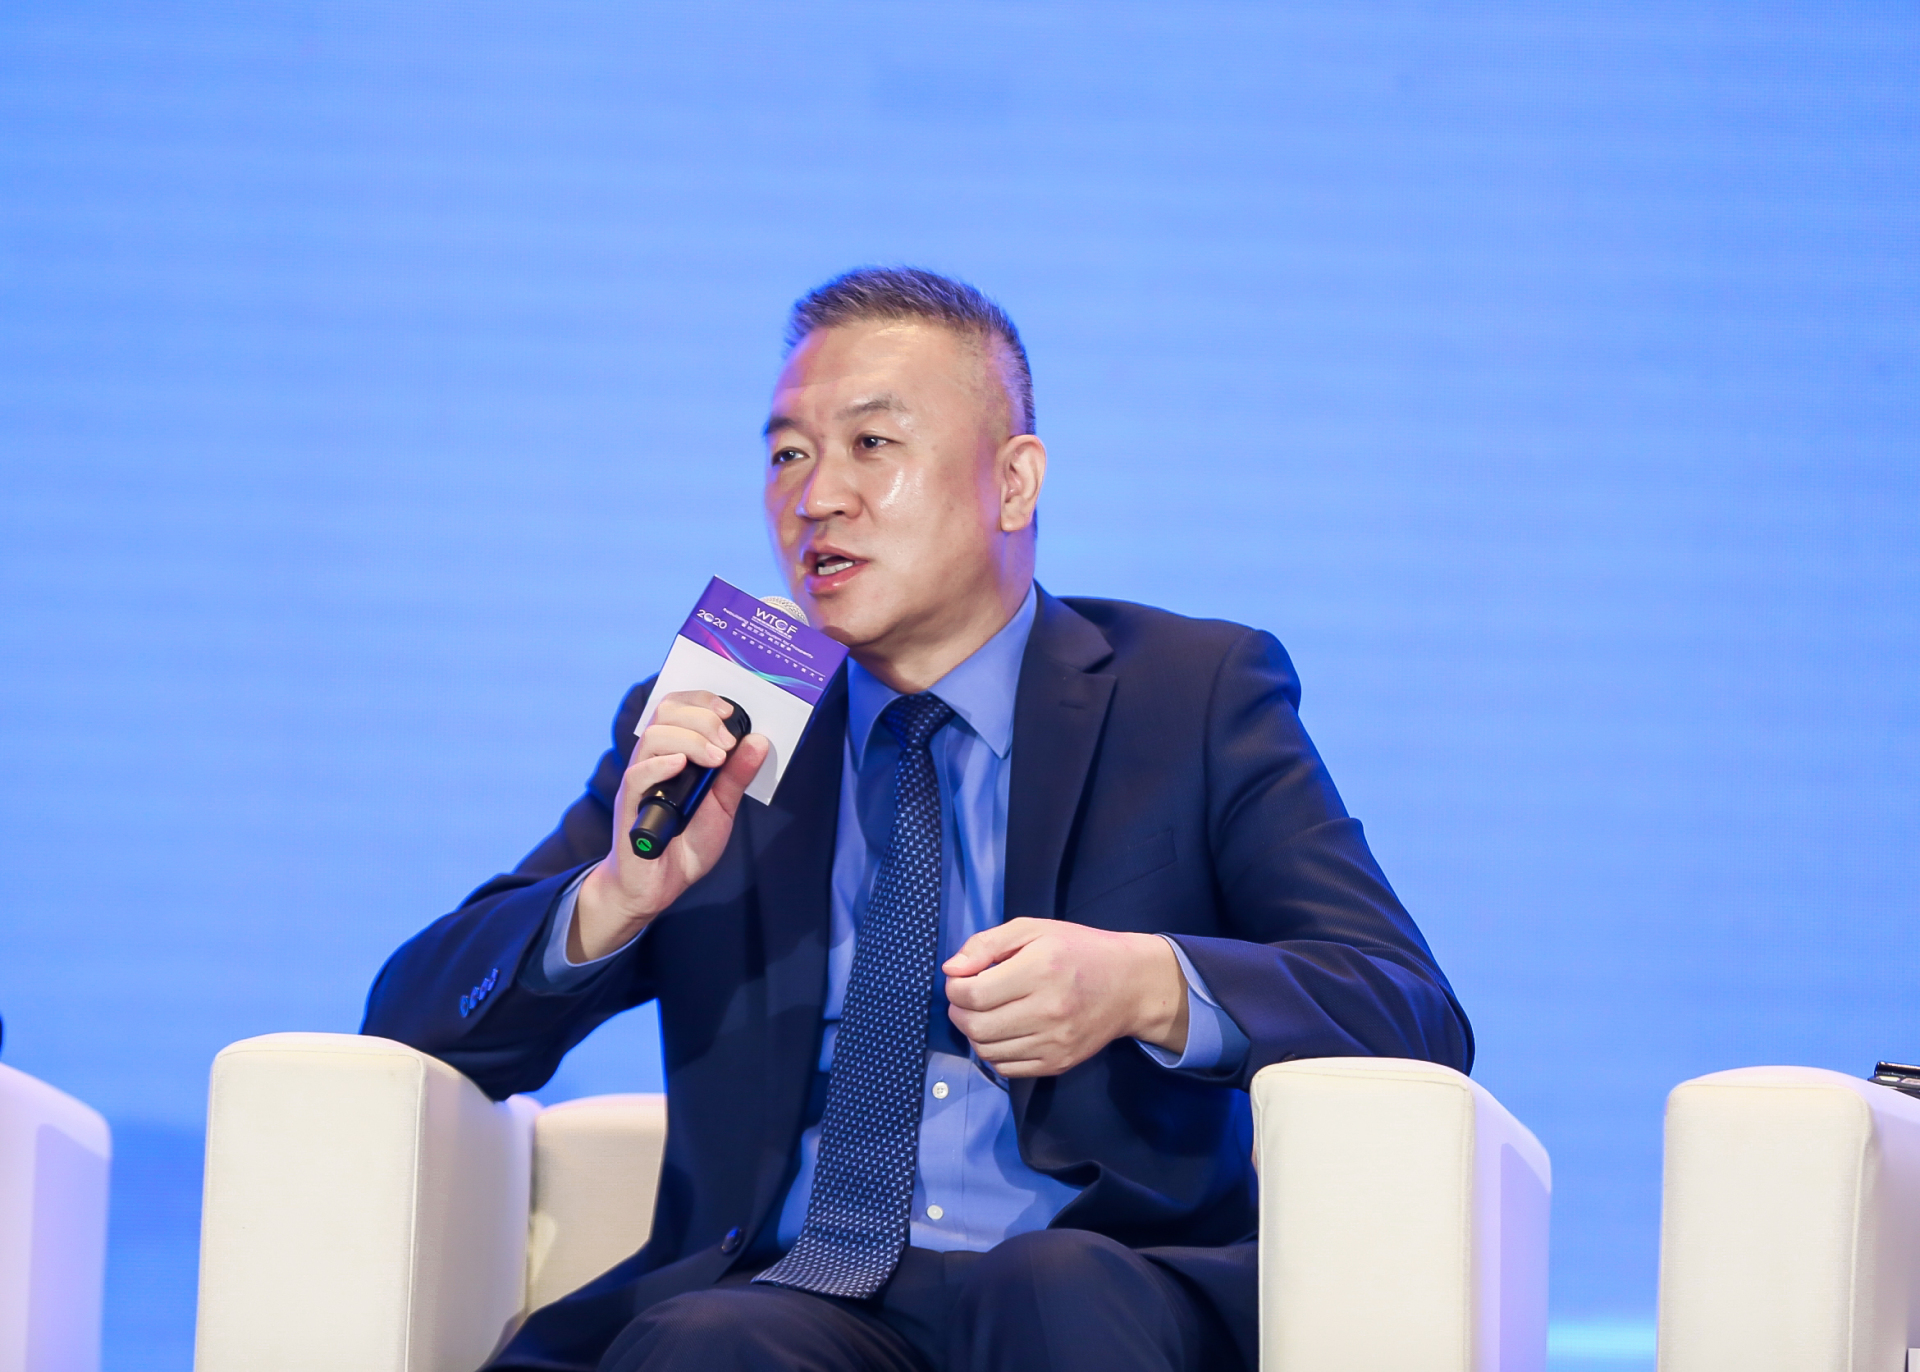 Roger Chen, Chairman of Carnival Group Asia